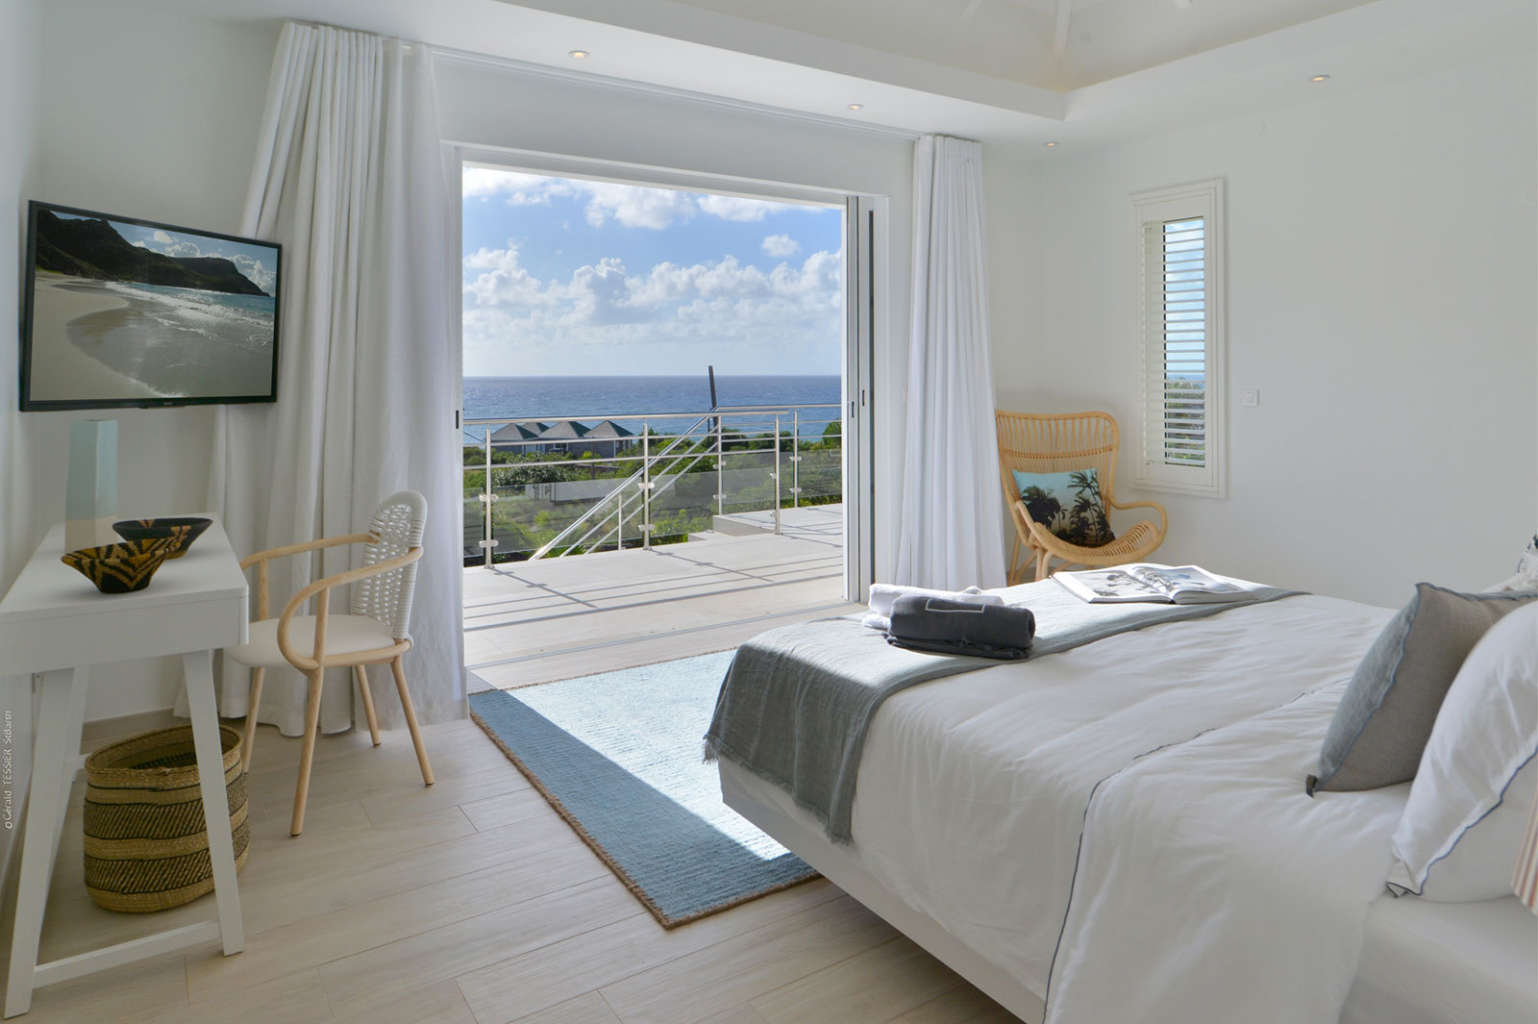 Villa South Wave - 2 Bedroom Villa For Rent with Full Air Conditioning - Bedroom with Sea View